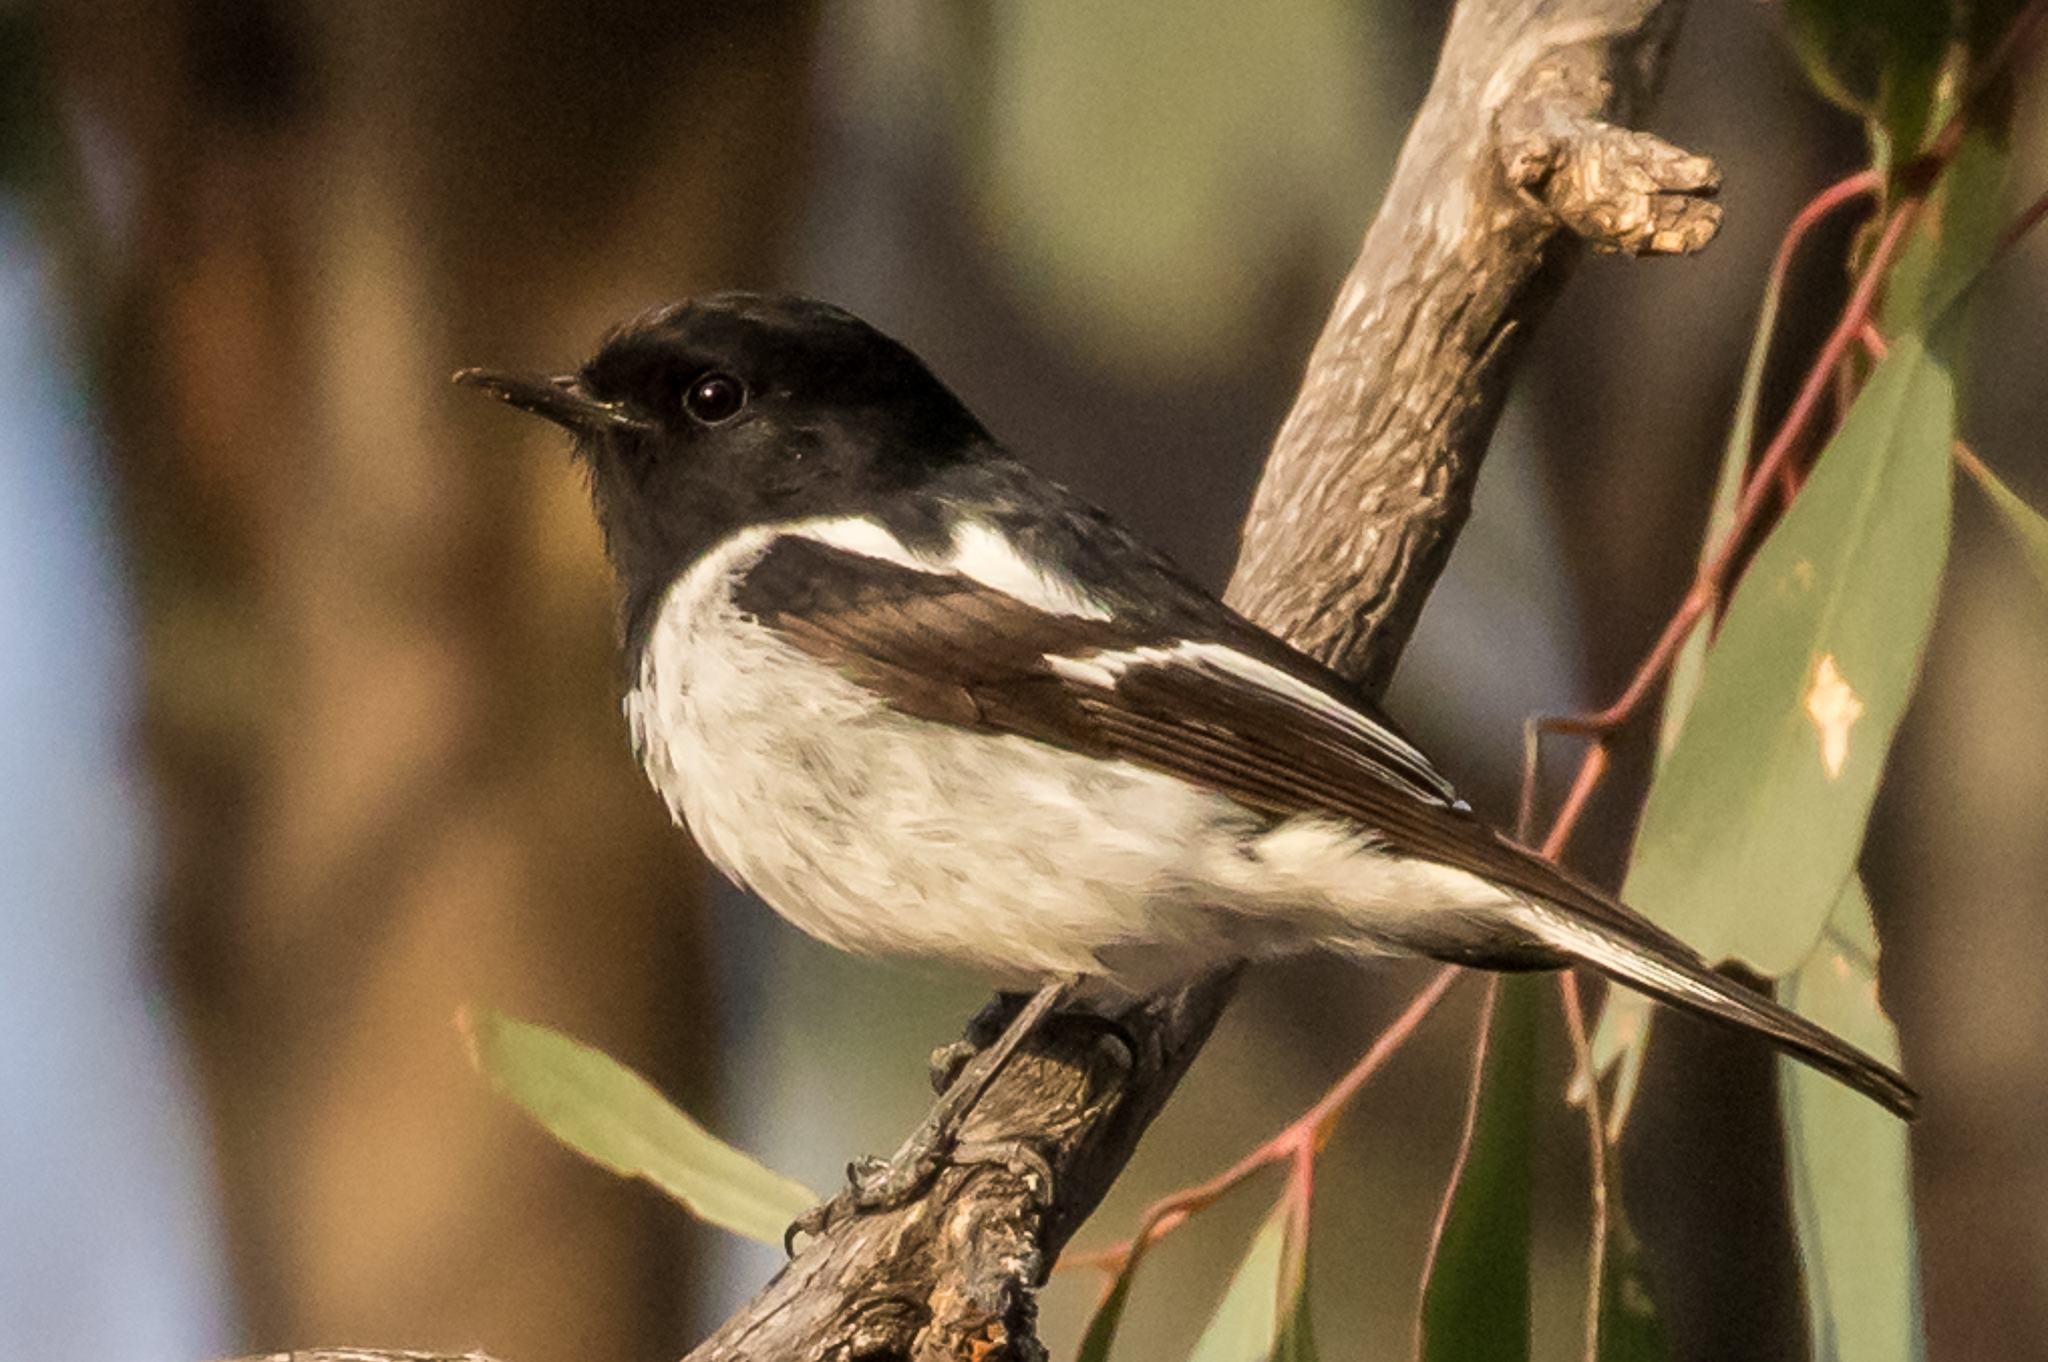 Hooded Robins sit on low branches in the forest, swooping to the ground to feed on insects. They are found in woodlands across most of Australia but numbers are diminishing in some places along with other woodland birds.